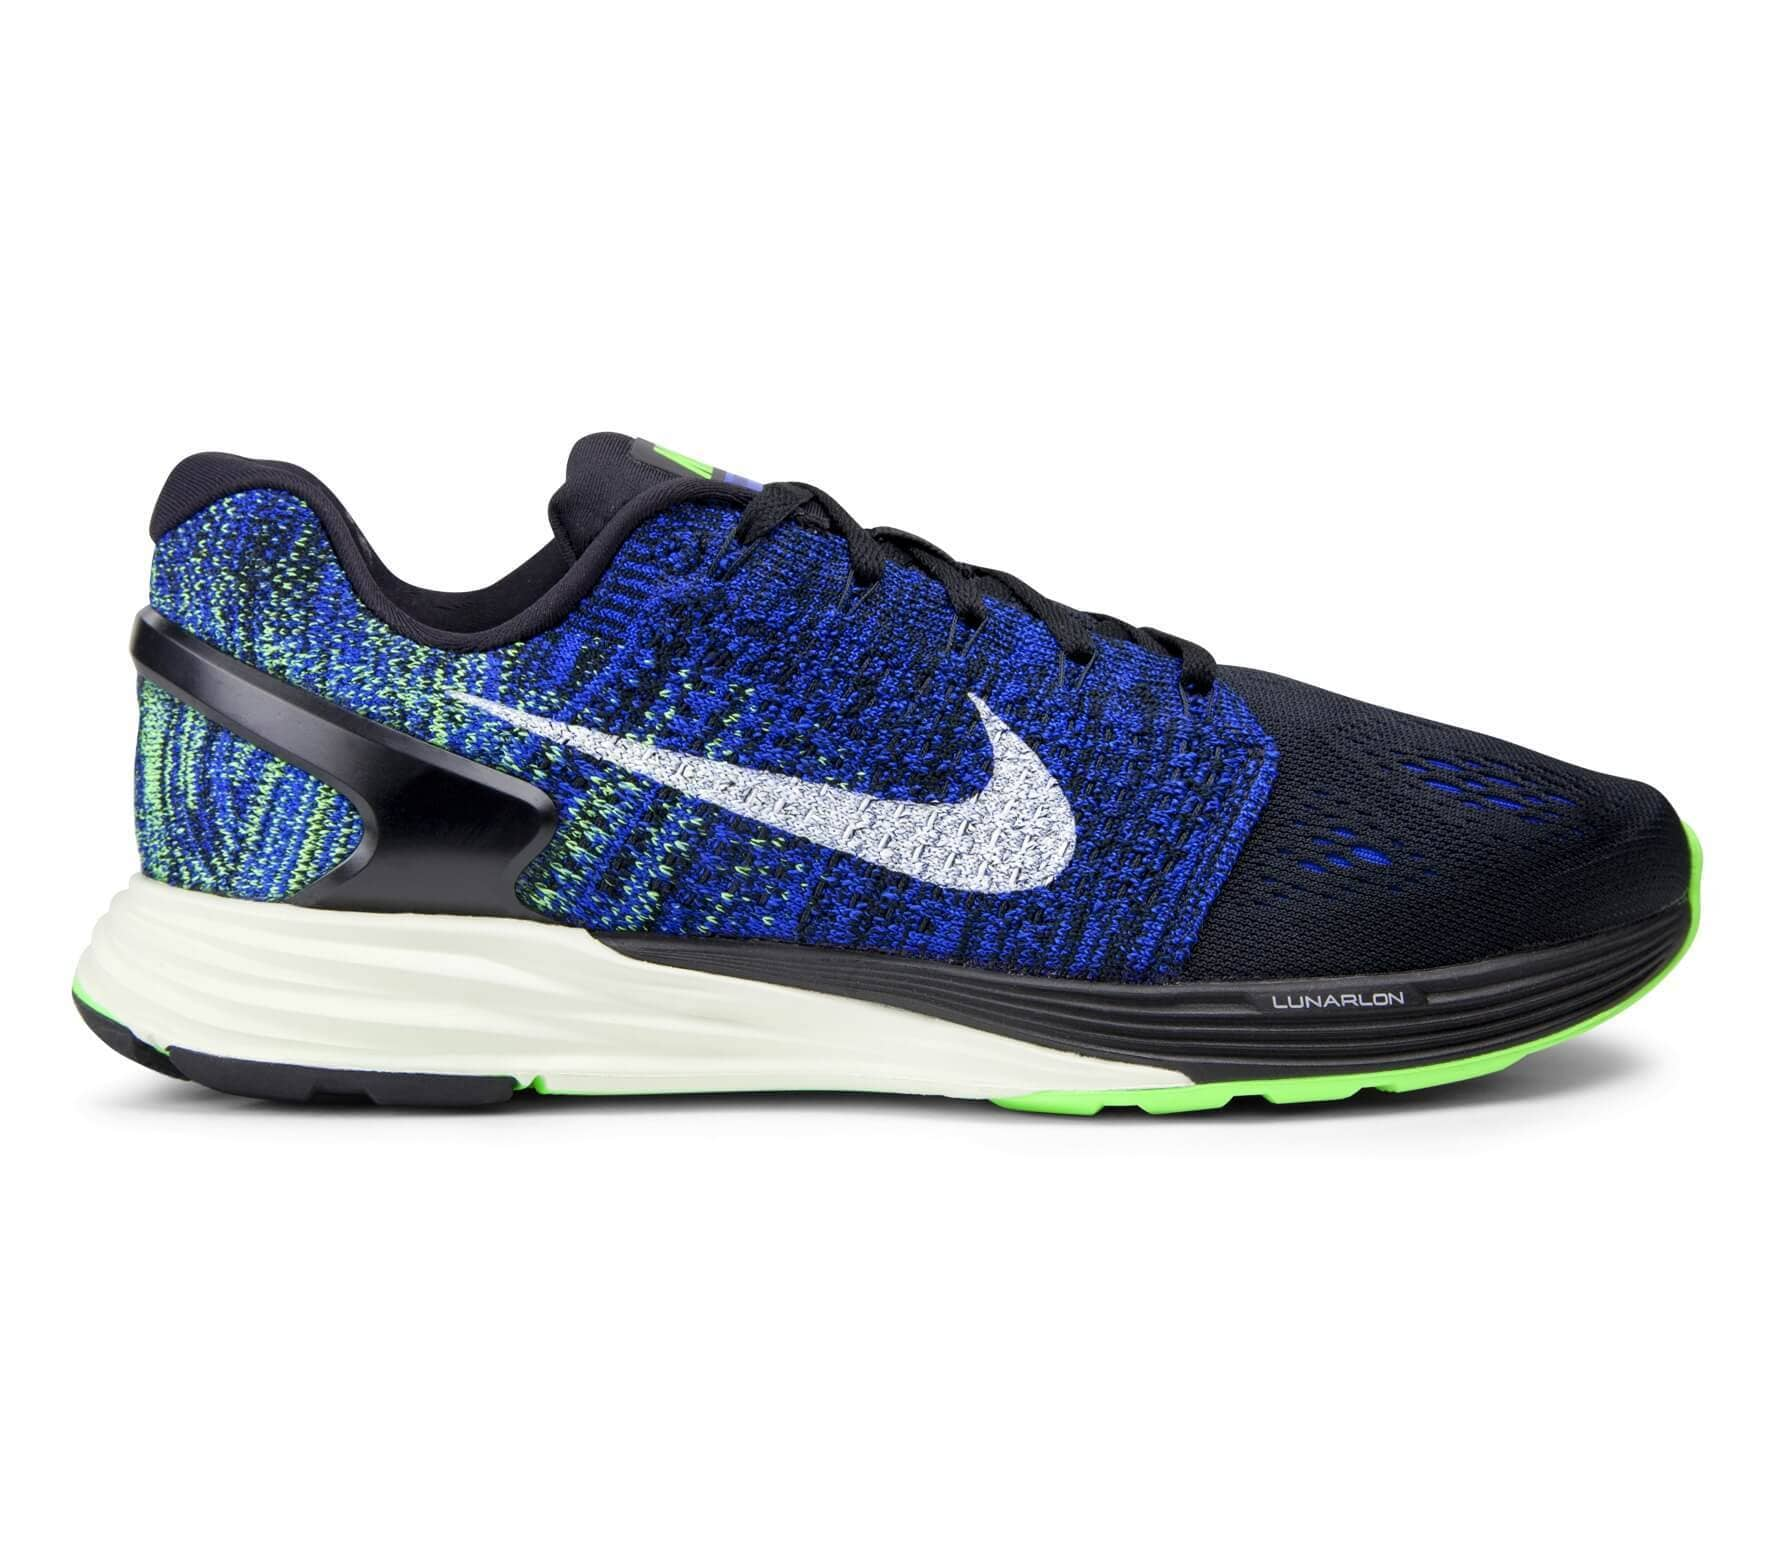 Dark Blue Nike Shoes Sold Where To Buy